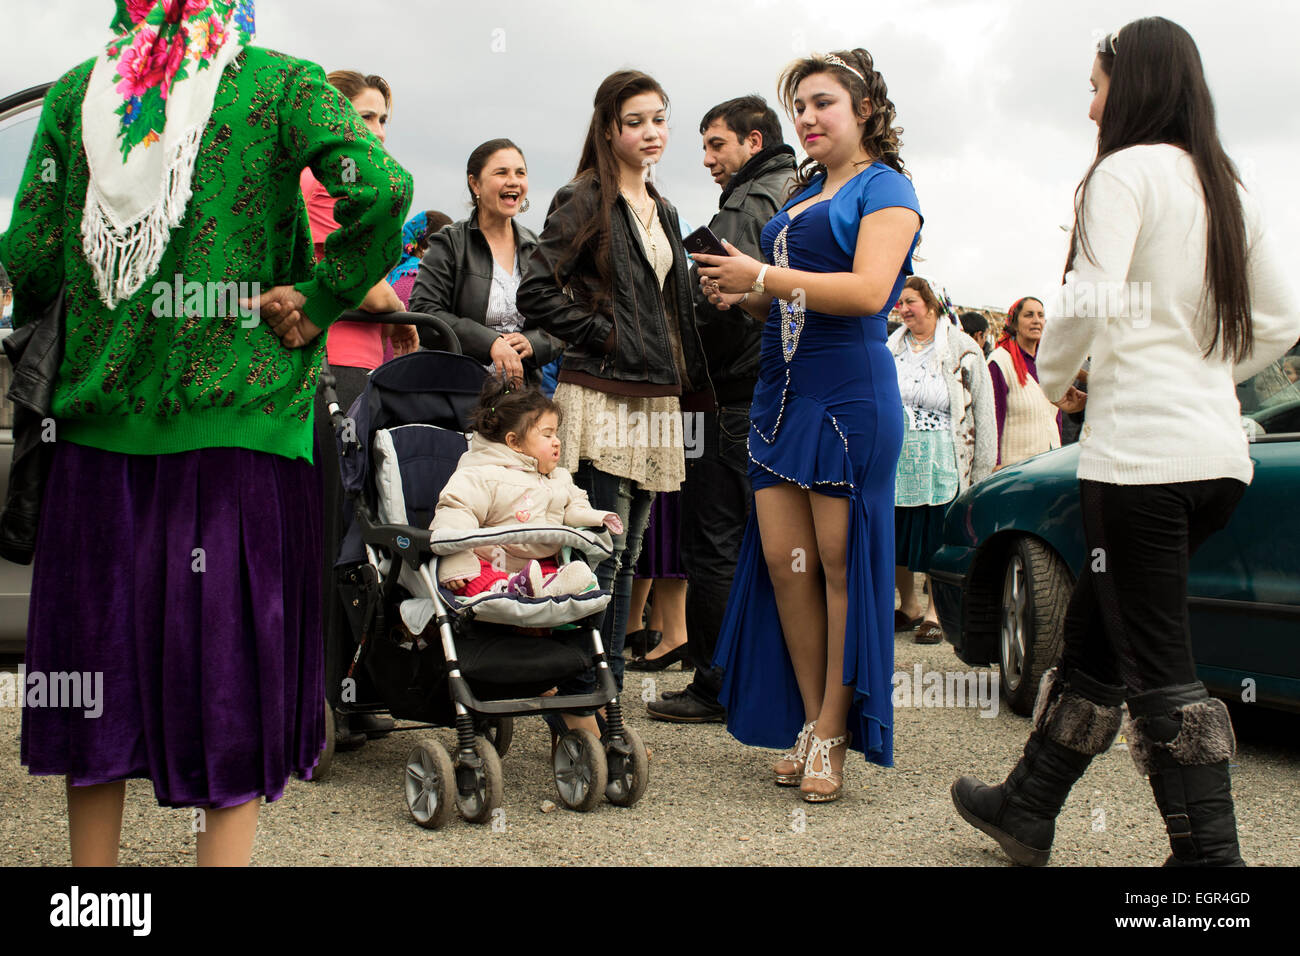 The annual gathering of the Thracian tinkers (Kalaidzhii) on the feast of St.Theodore in Stara Zagora, Bulgaria, - Stock Image